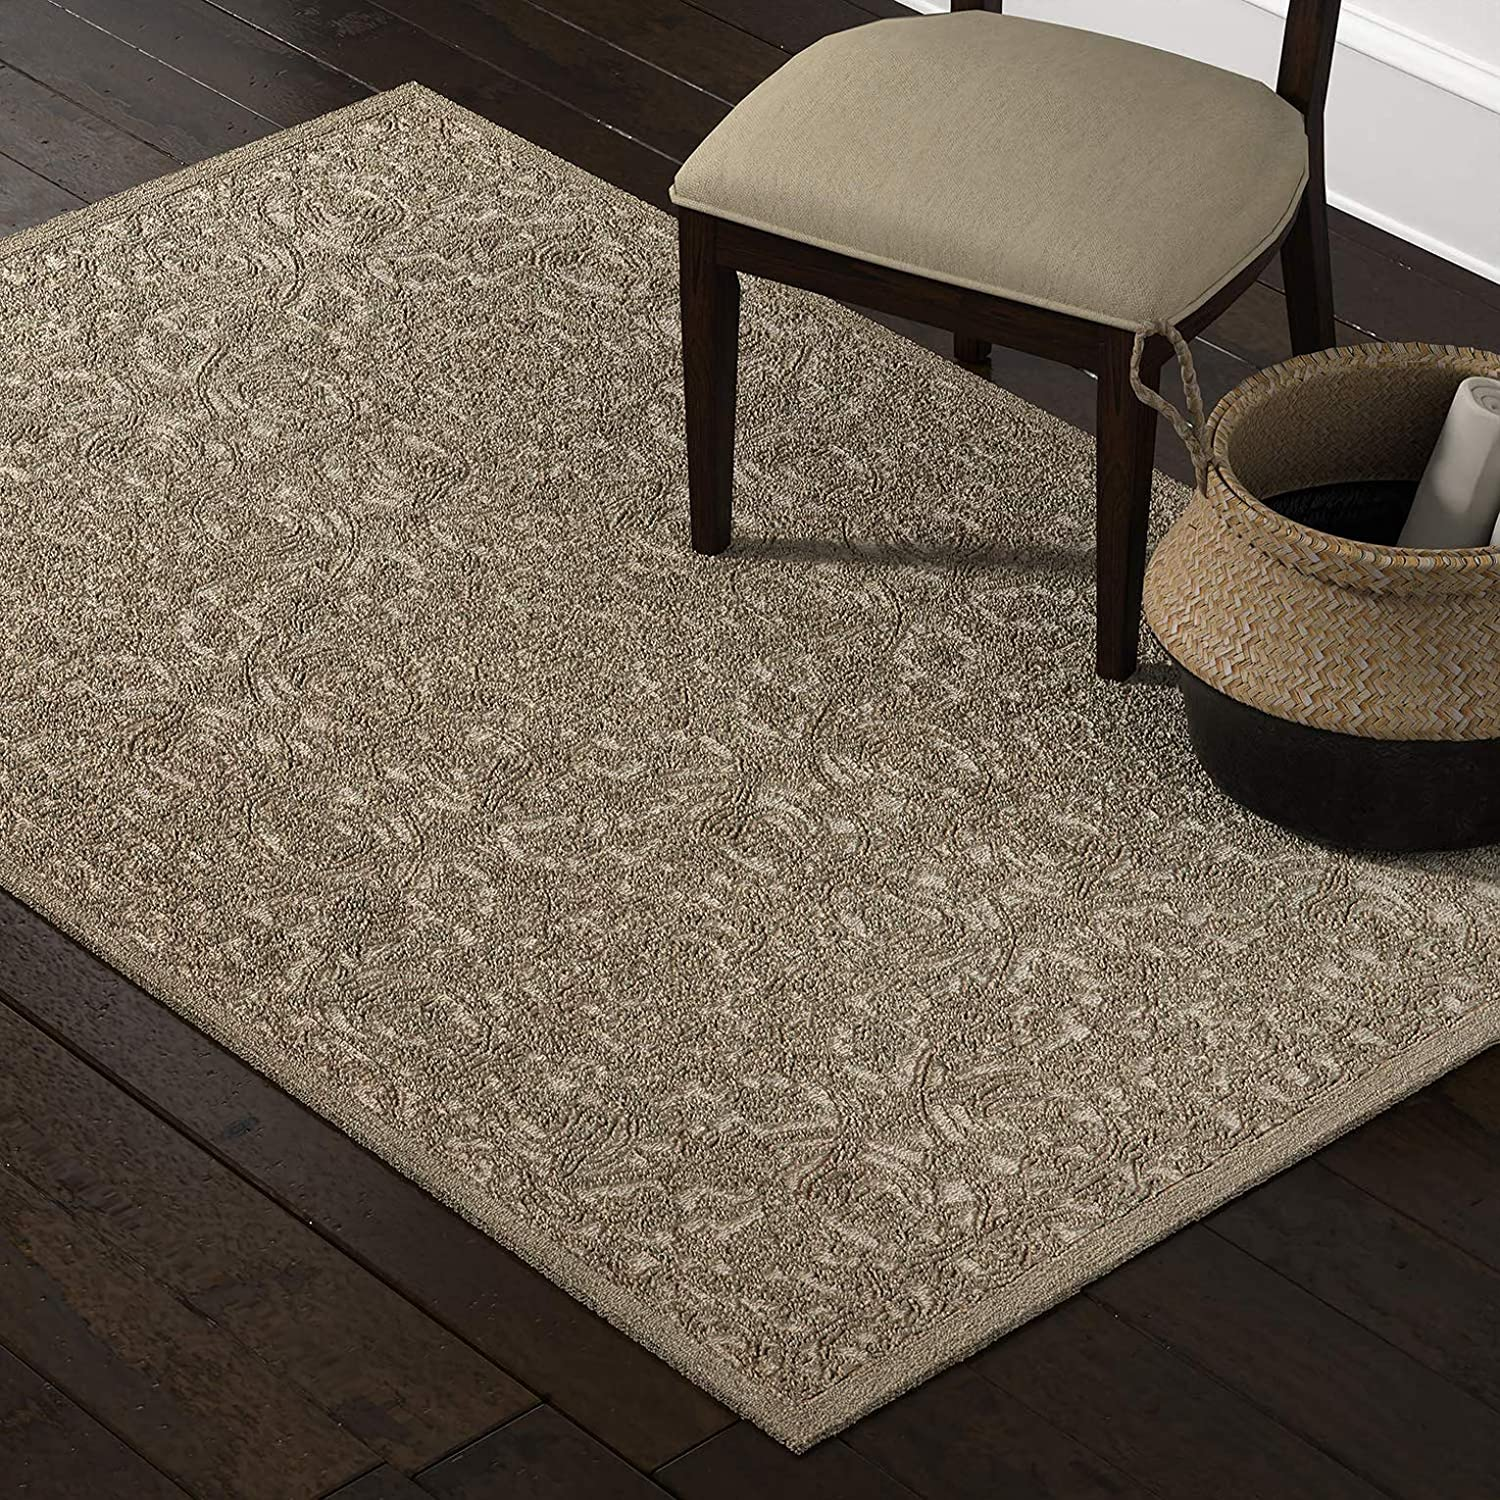 Amazon Brand – Stone & Beam Floral Wool Area Rug, 5 x 8 Foot, Taupe